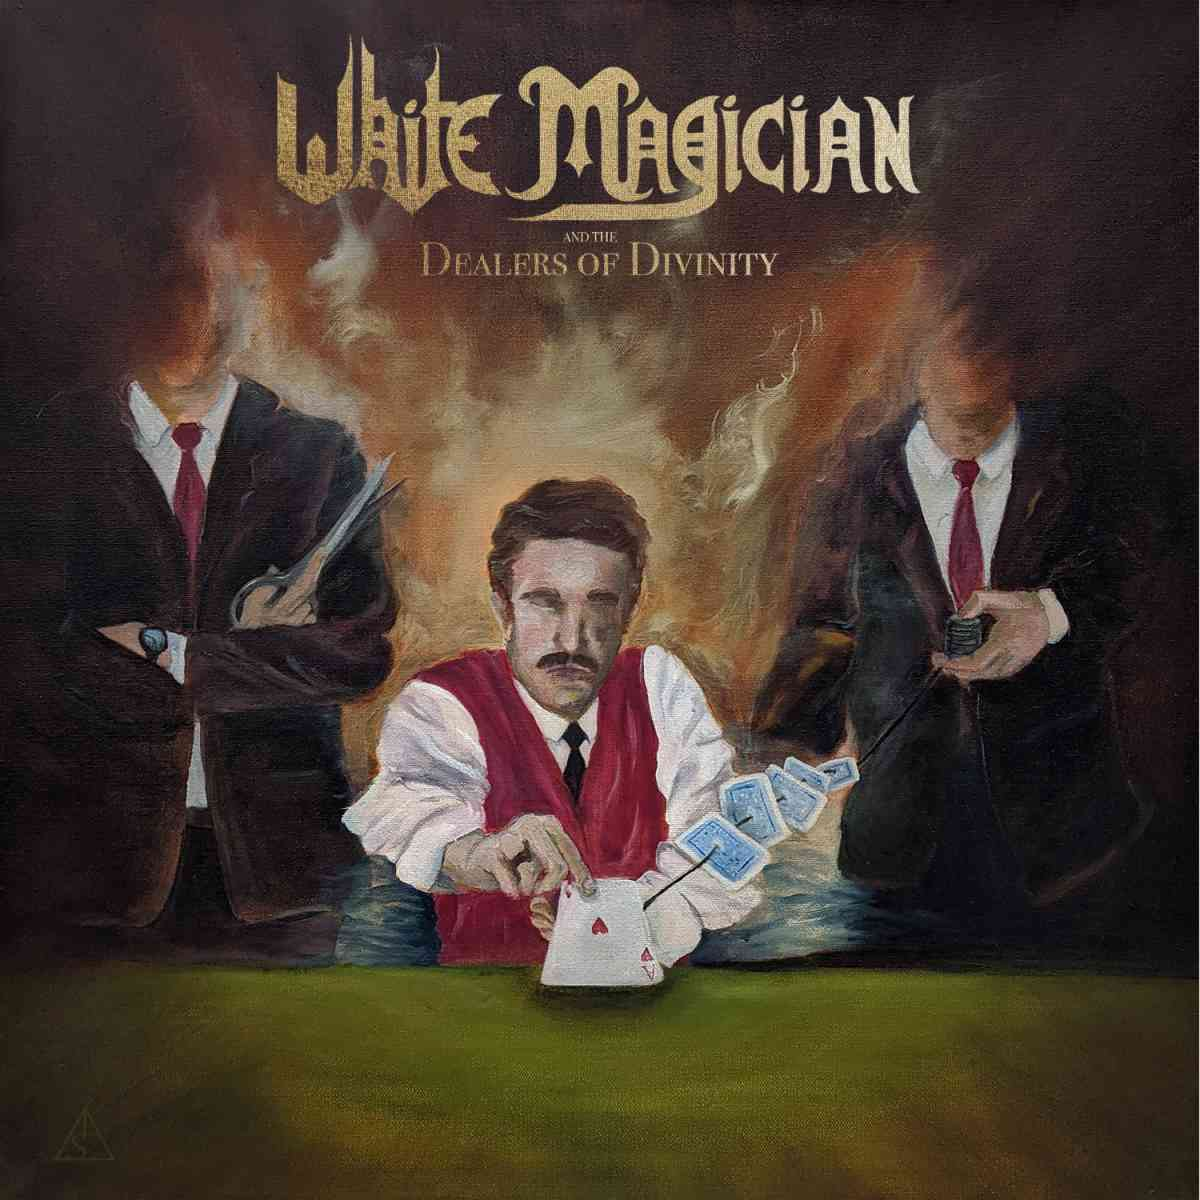 White Magician - Dealers Of Divinity - album cover